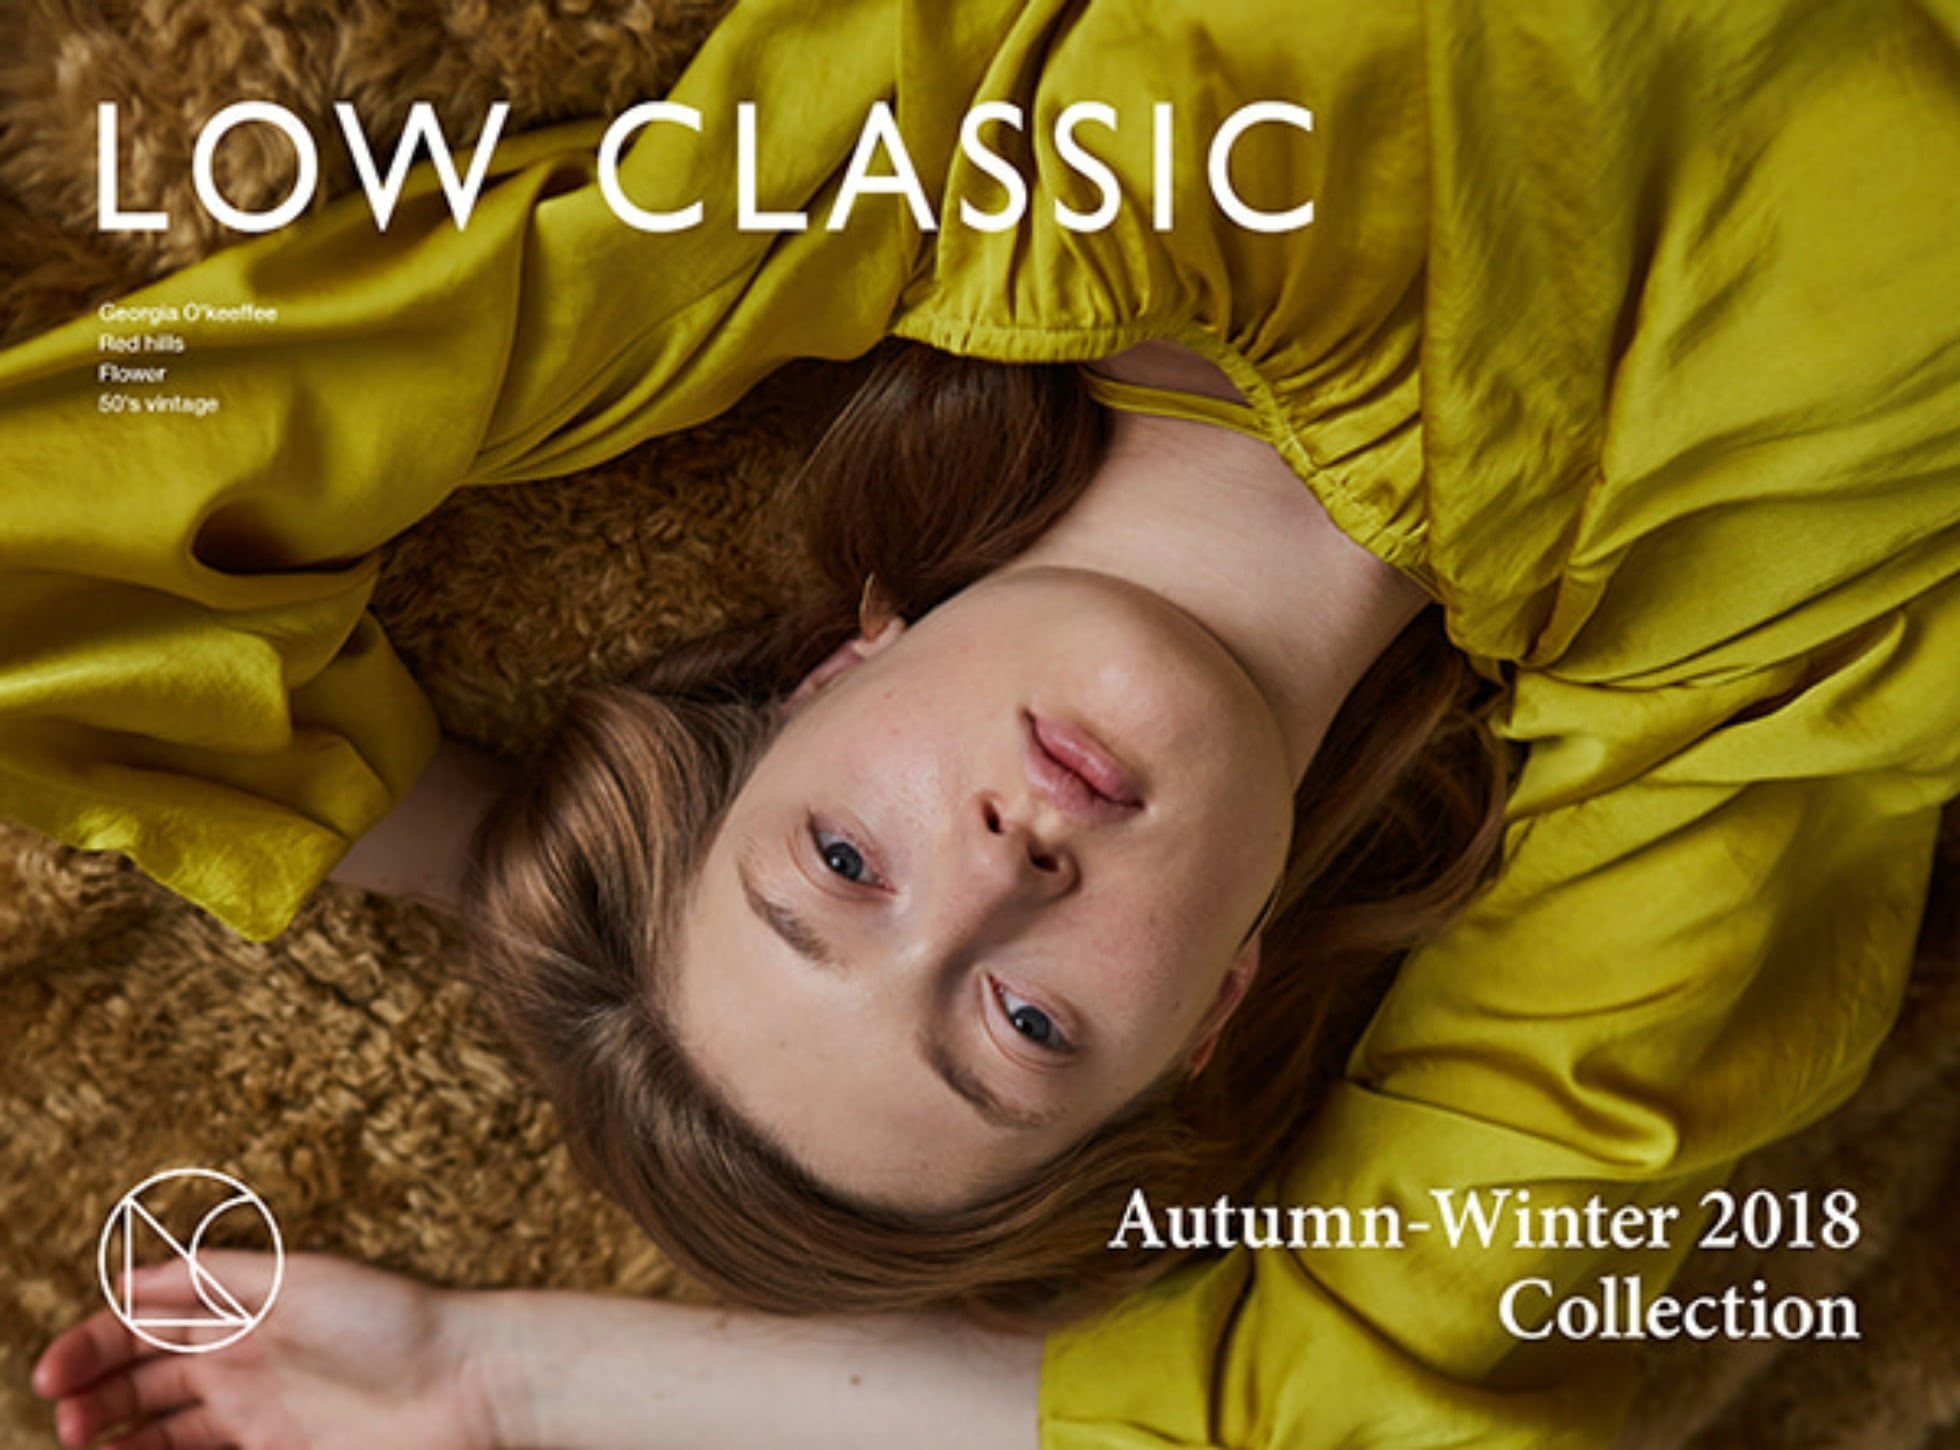 Autumn-Winter 2018 Collection LOW CLASSIC